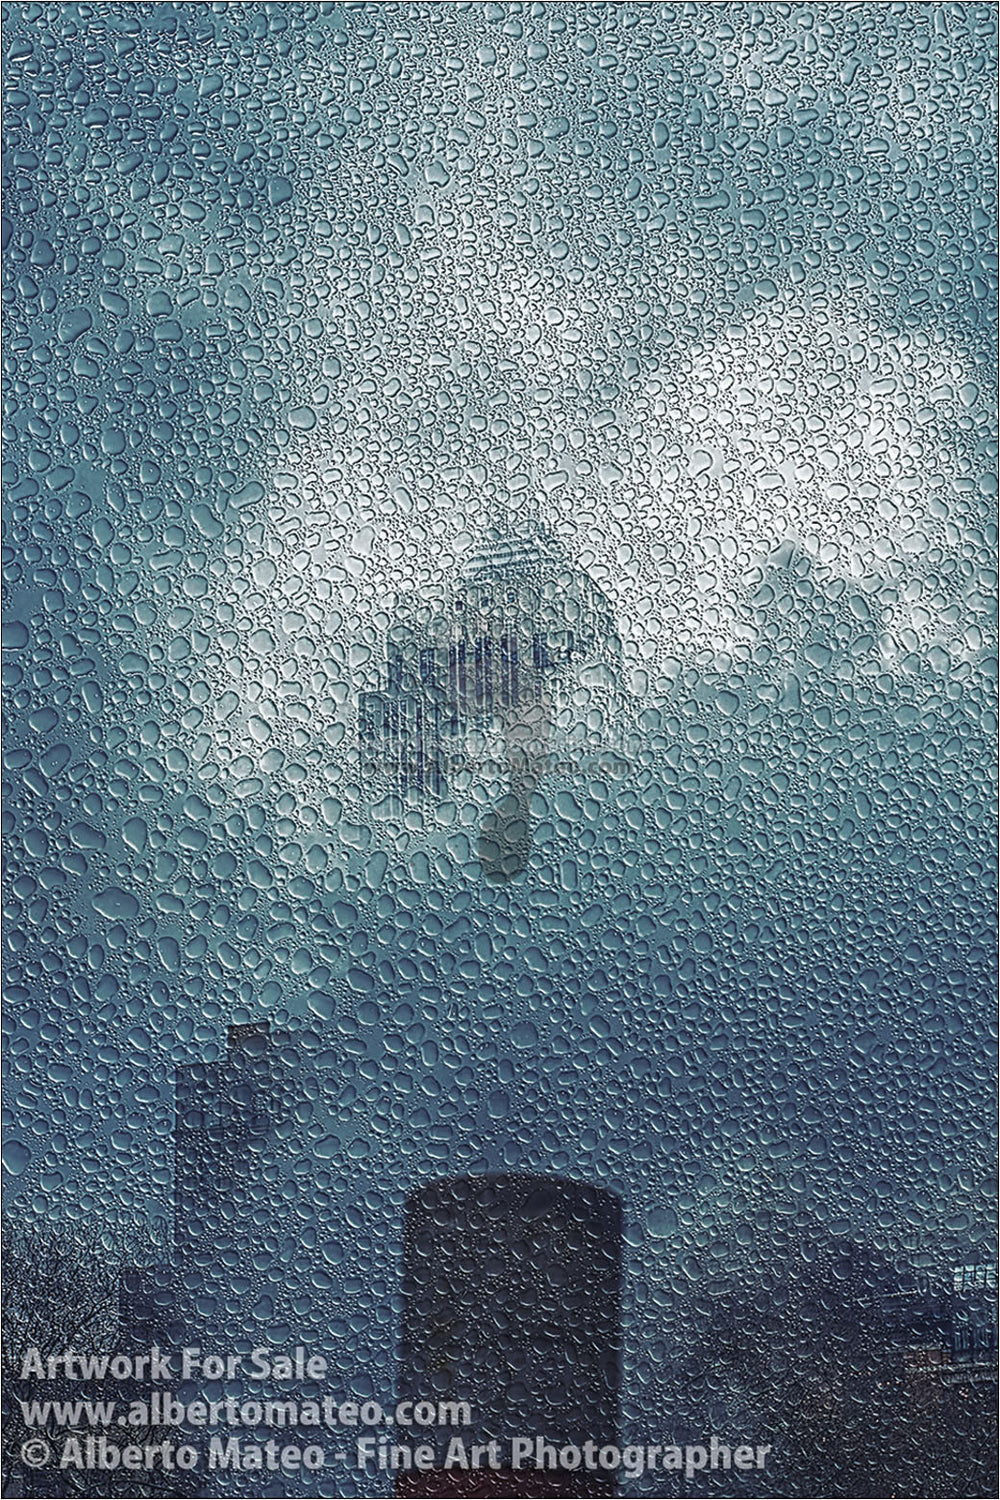 Empire State under the Rain, New York. [3/3] | Full view of the Print.